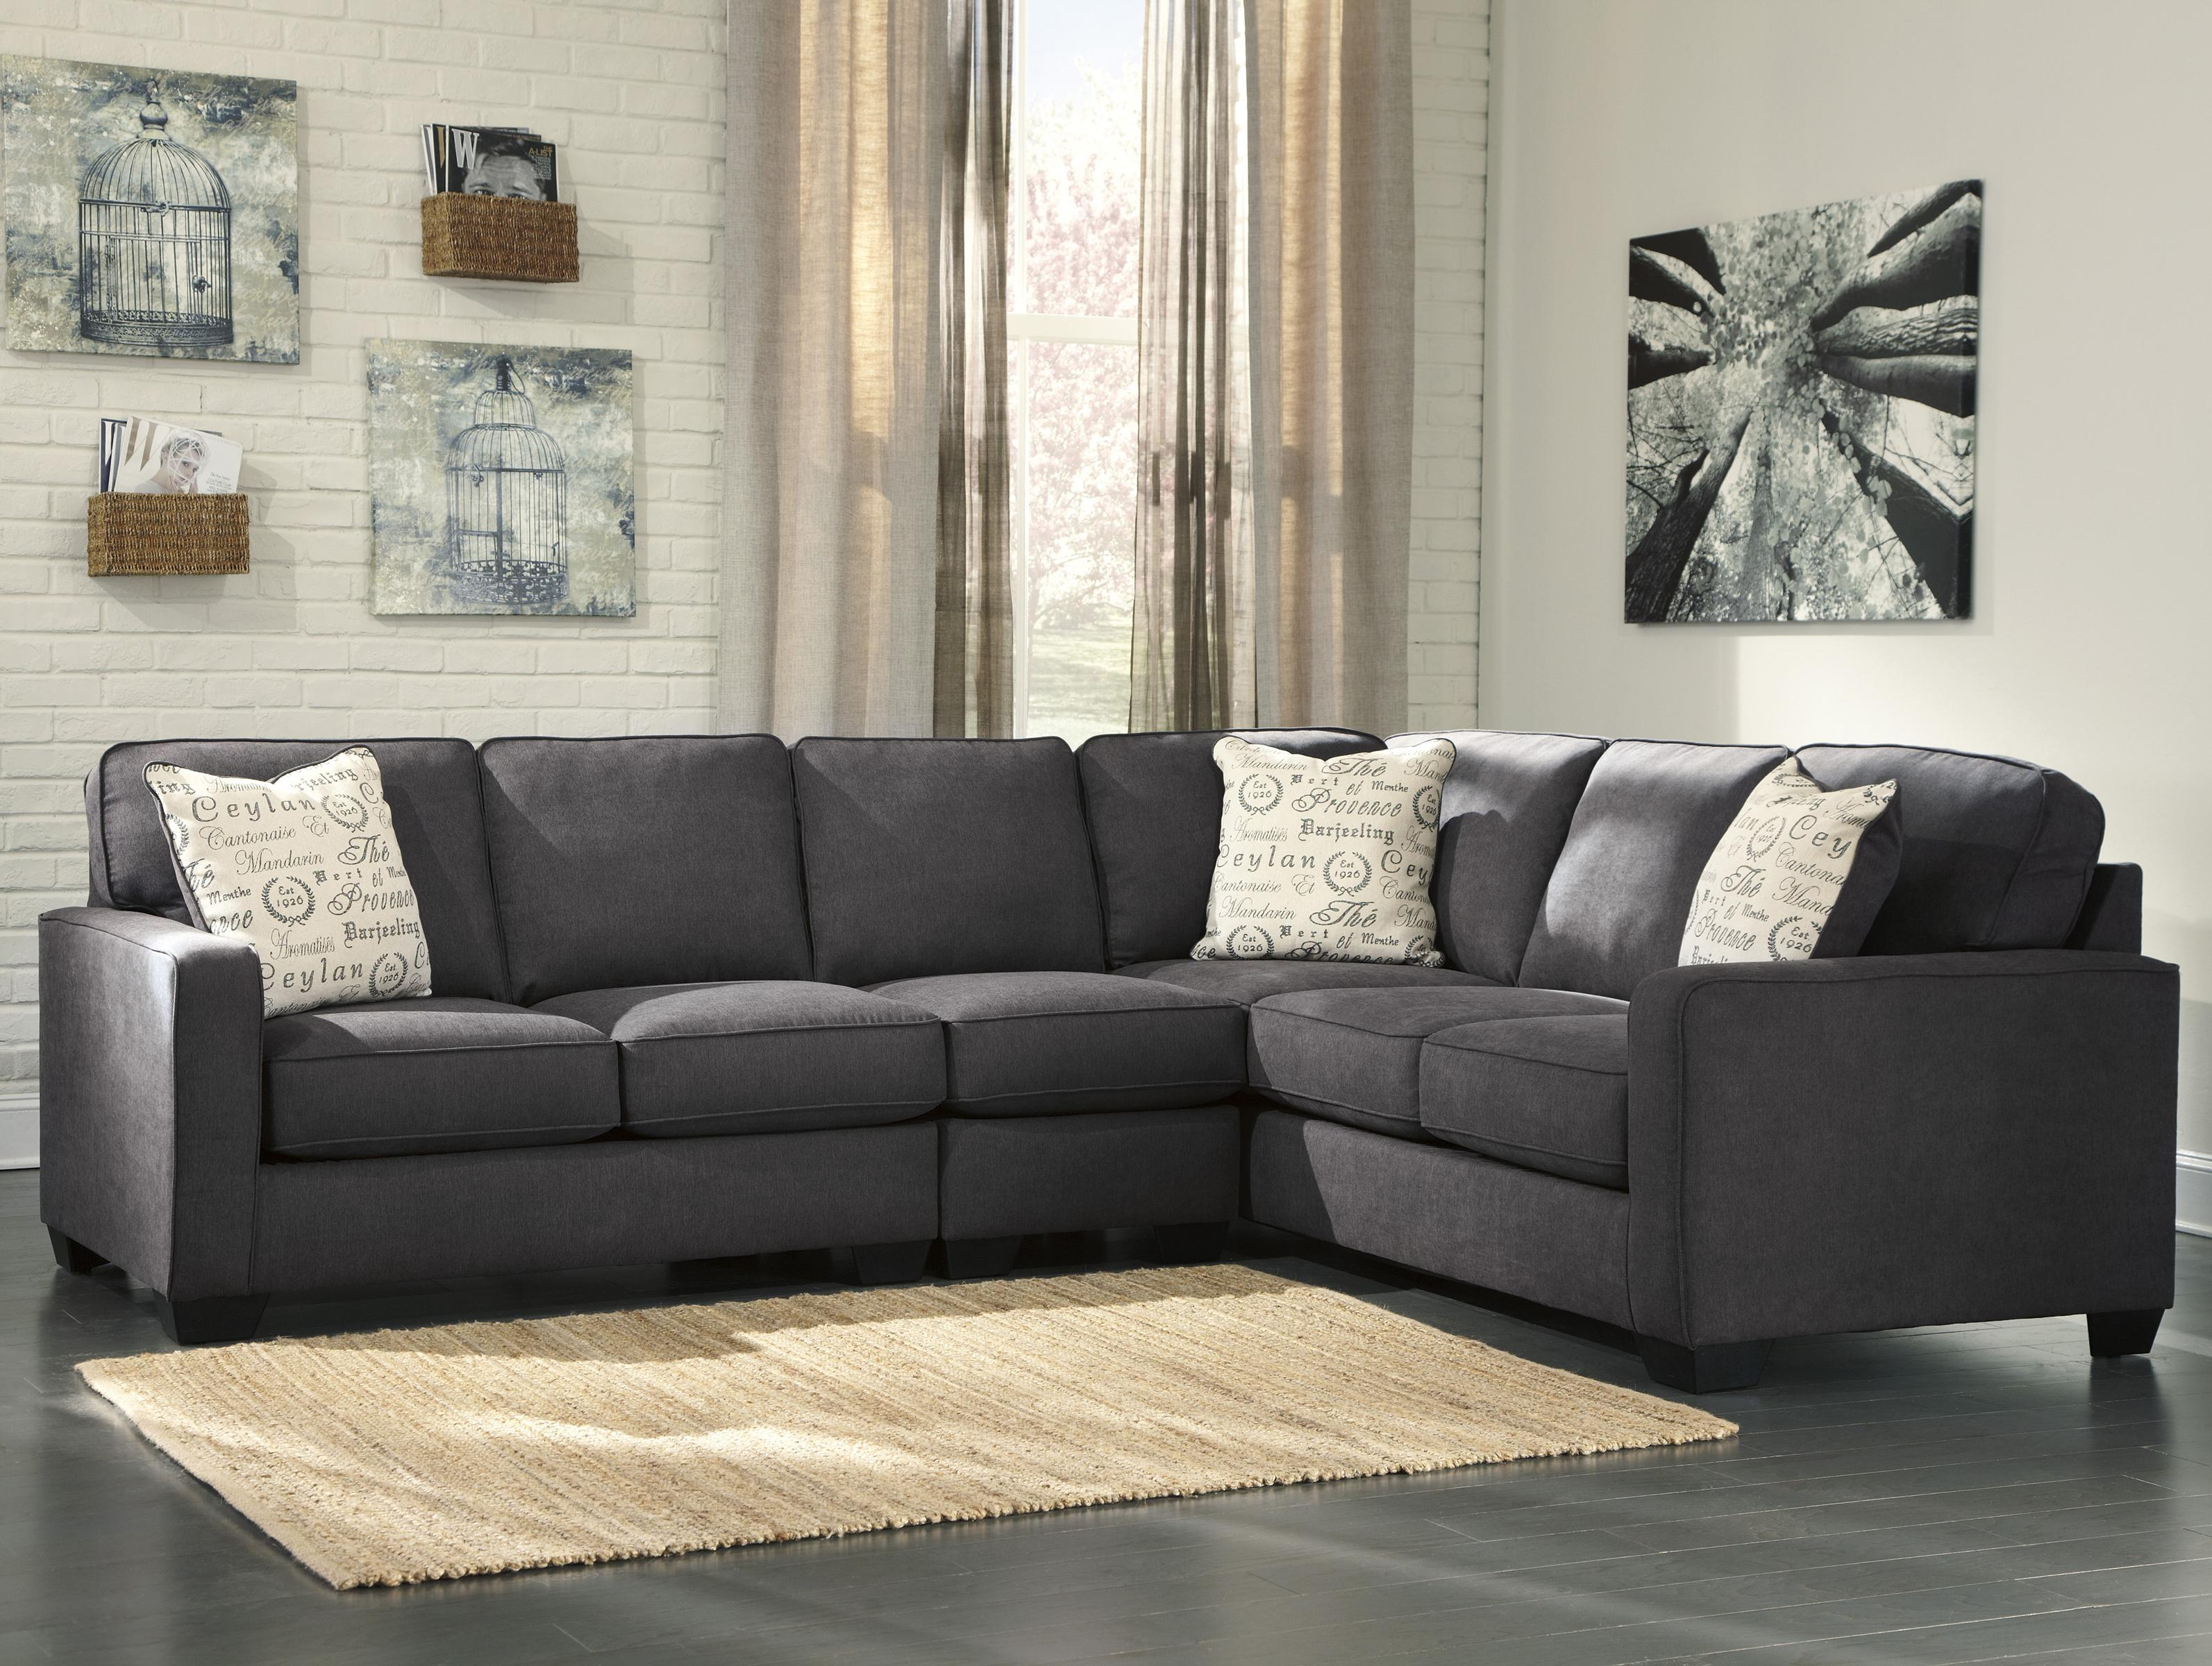 jamestown 2 piece sofa and loveseat group in gray sleeper sectionals small spaces signature design by ashley alenya charcoal 3